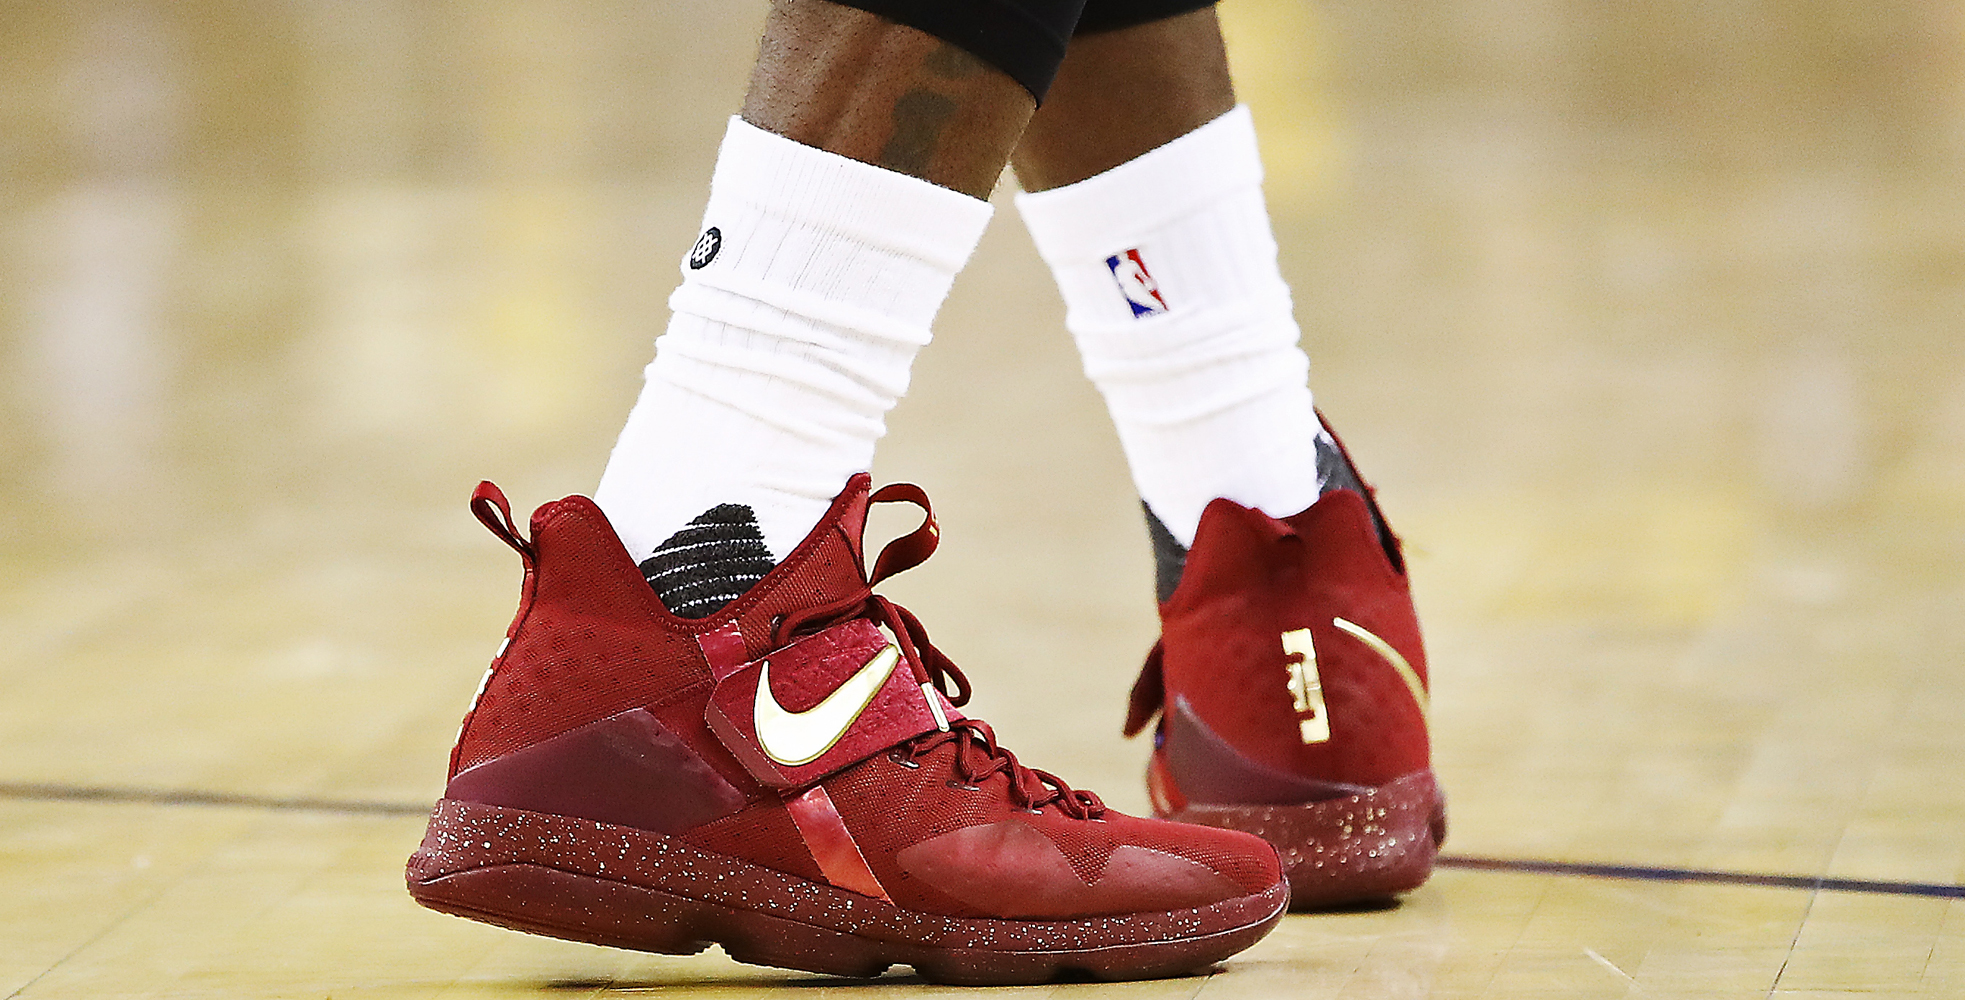 Nike LeBron XIV PE worn by LeBron James